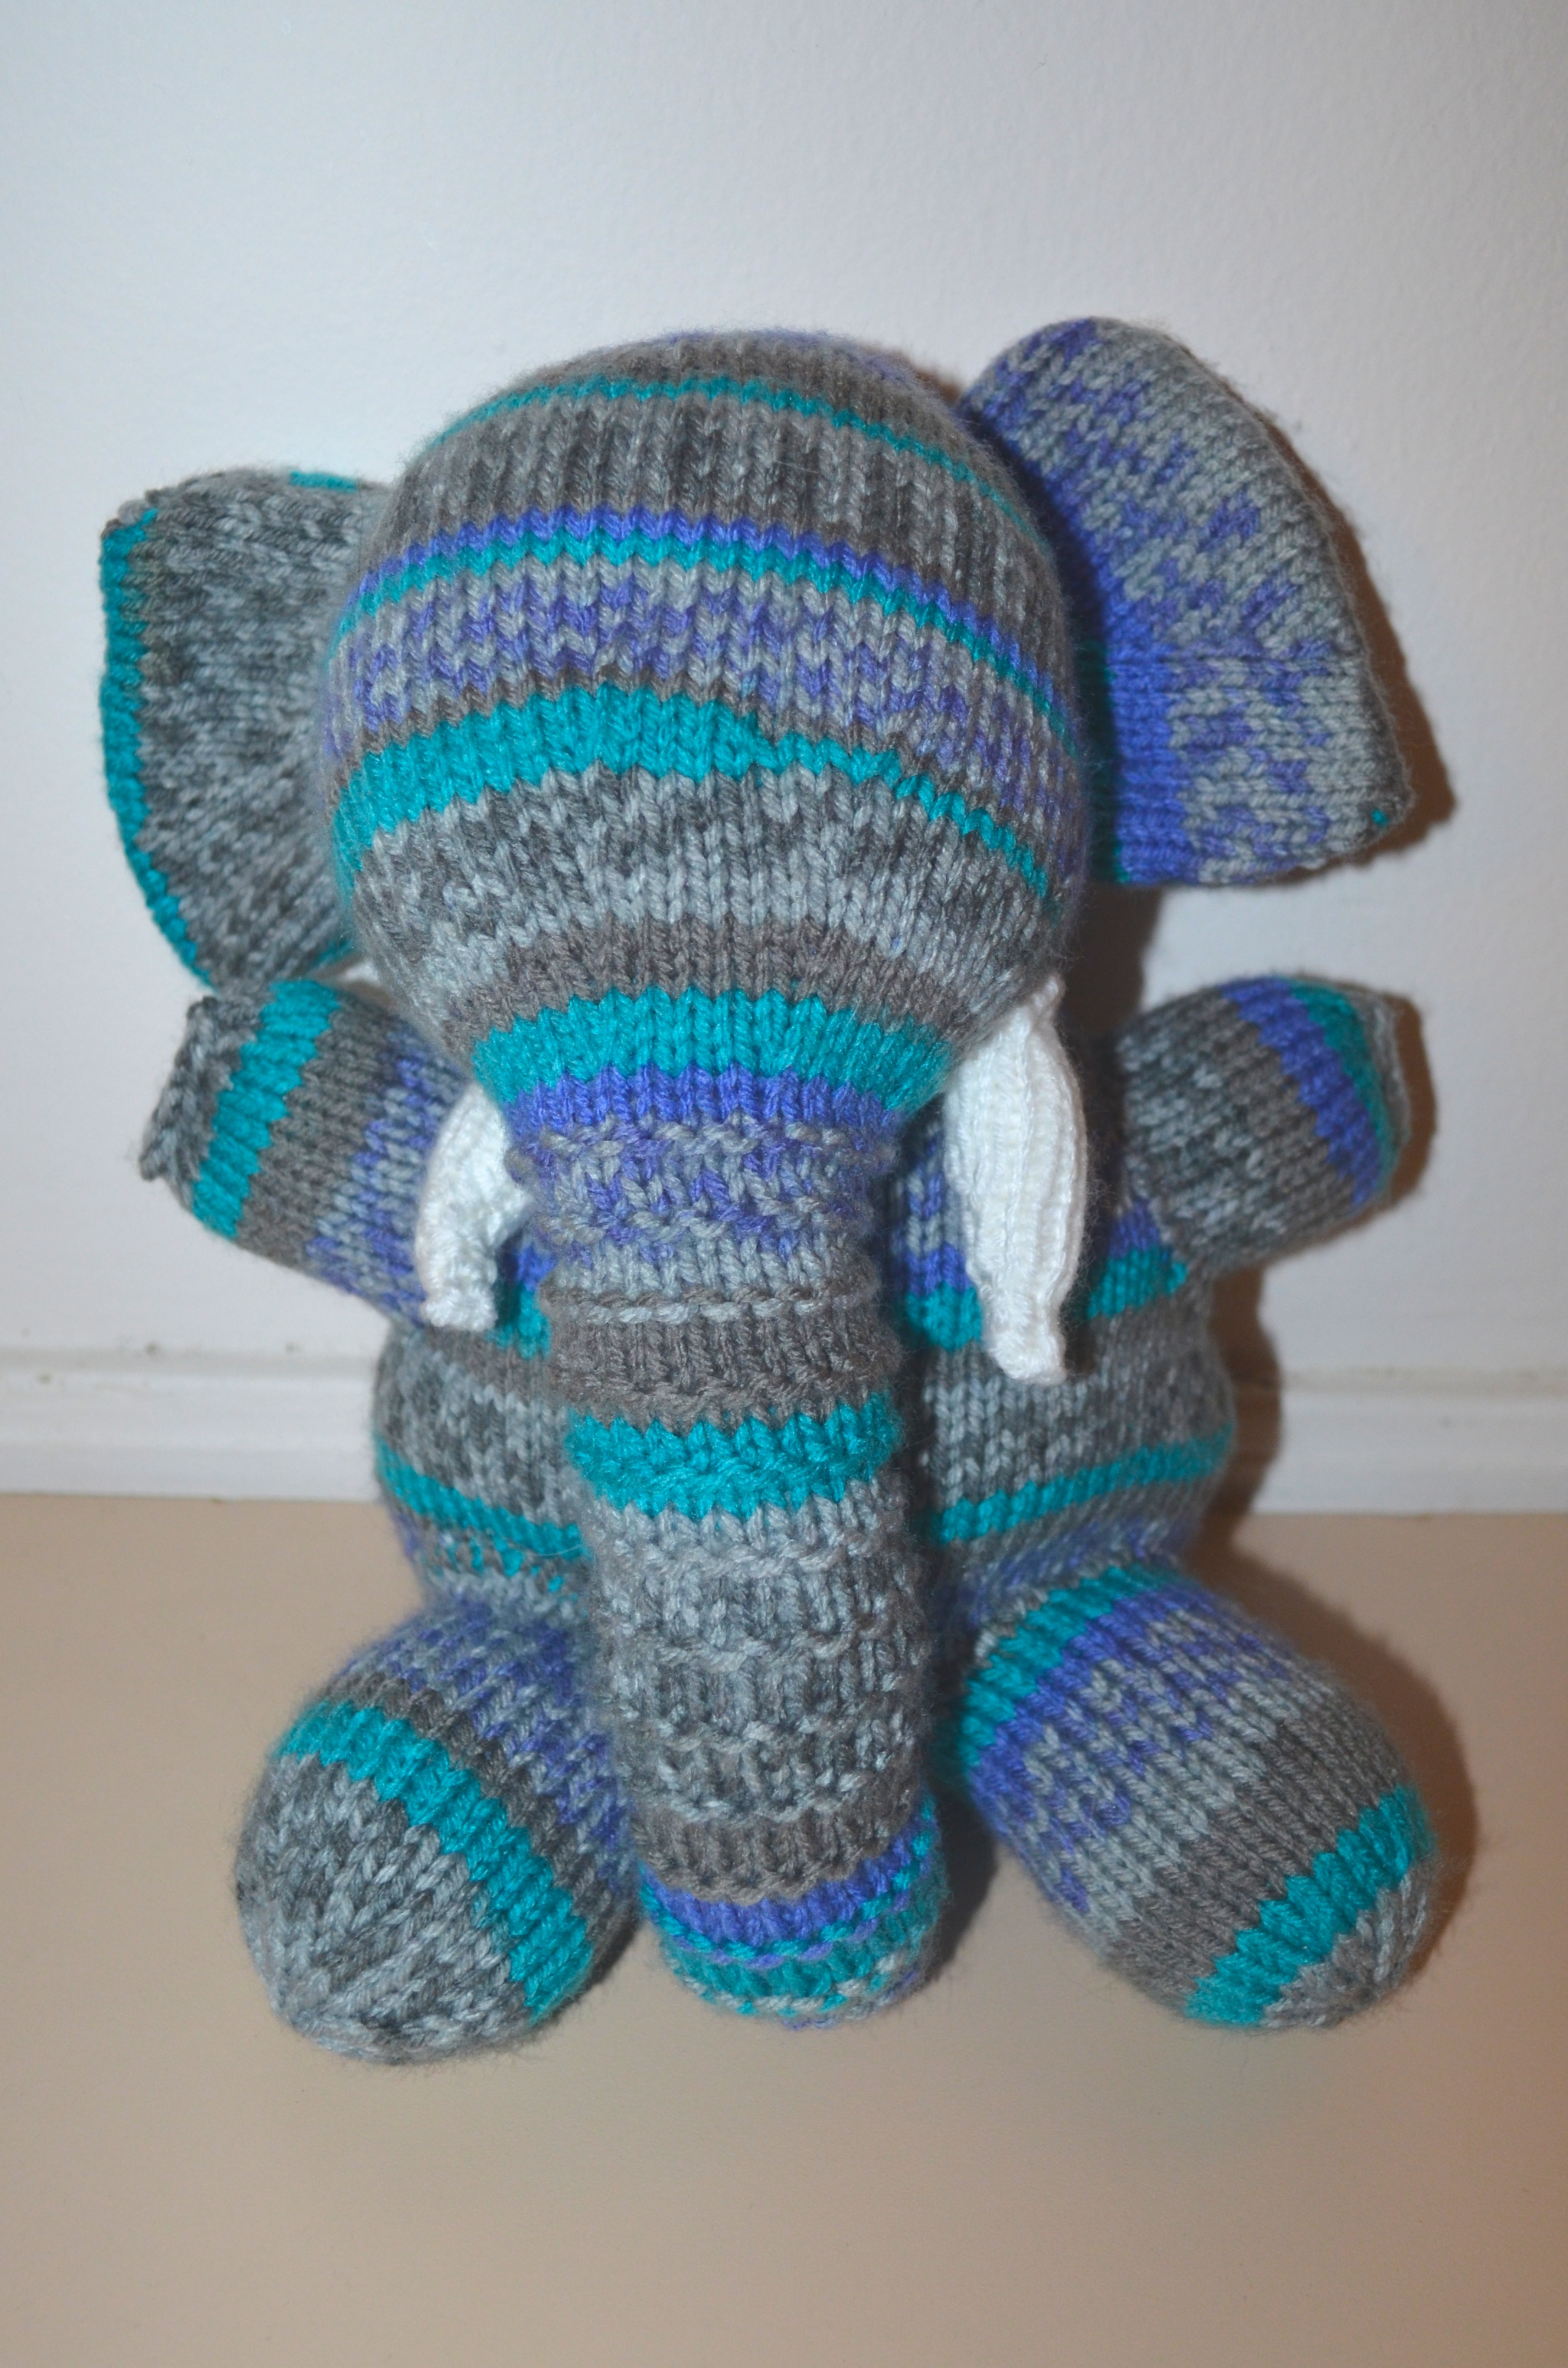 Best Of Custom Knit Elephant Stuffed Animal Knit Stuffed Animals Of Beautiful 47 Pics Knit Stuffed Animals